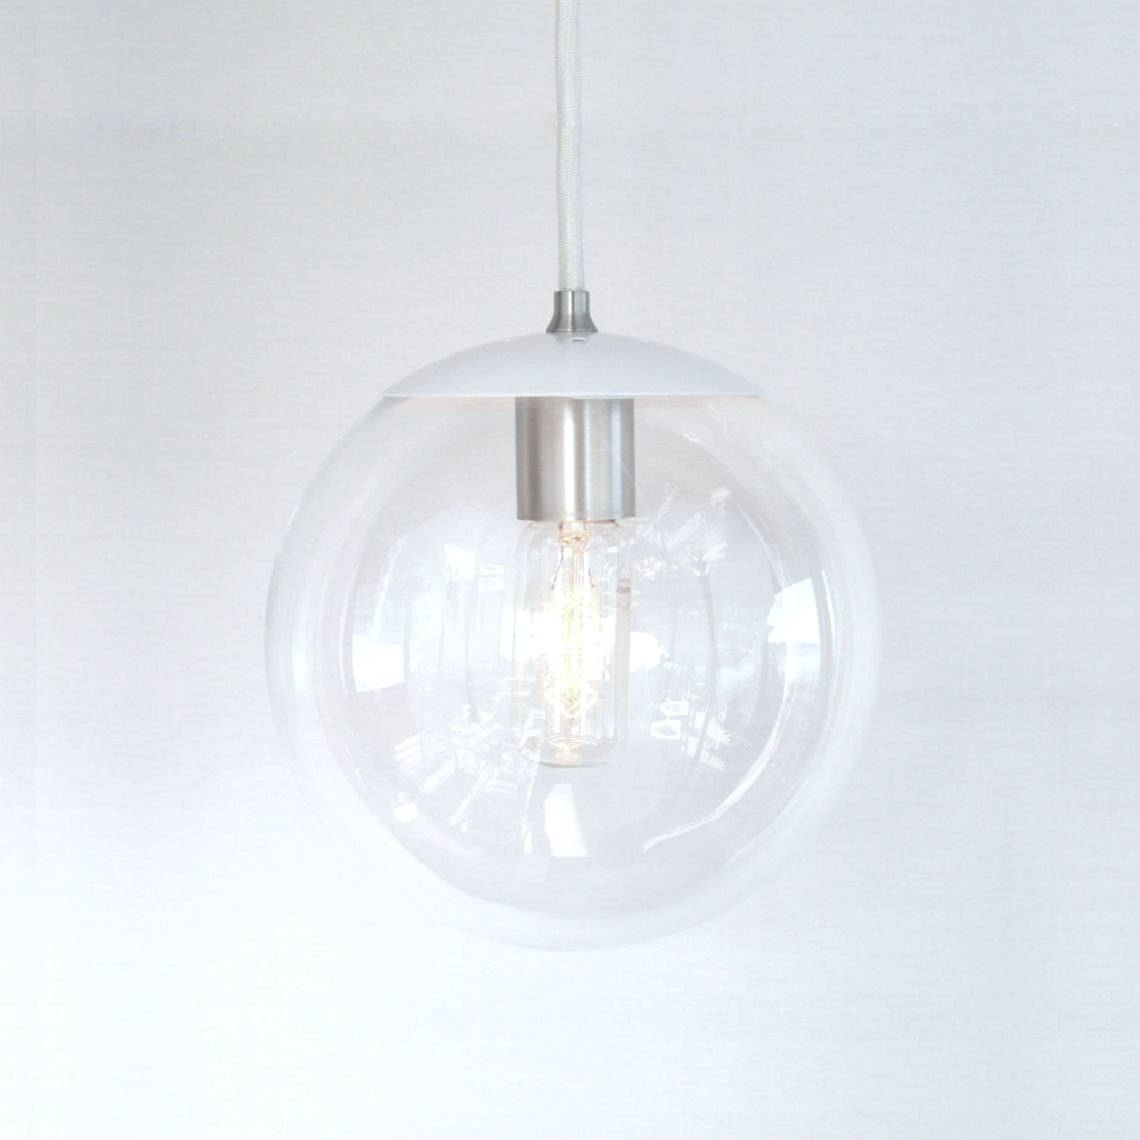 Amazing Of Clear Globe Pendant Light For Interior Decorating throughout Glass Ball Pendant Lights Uk (Image 1 of 15)